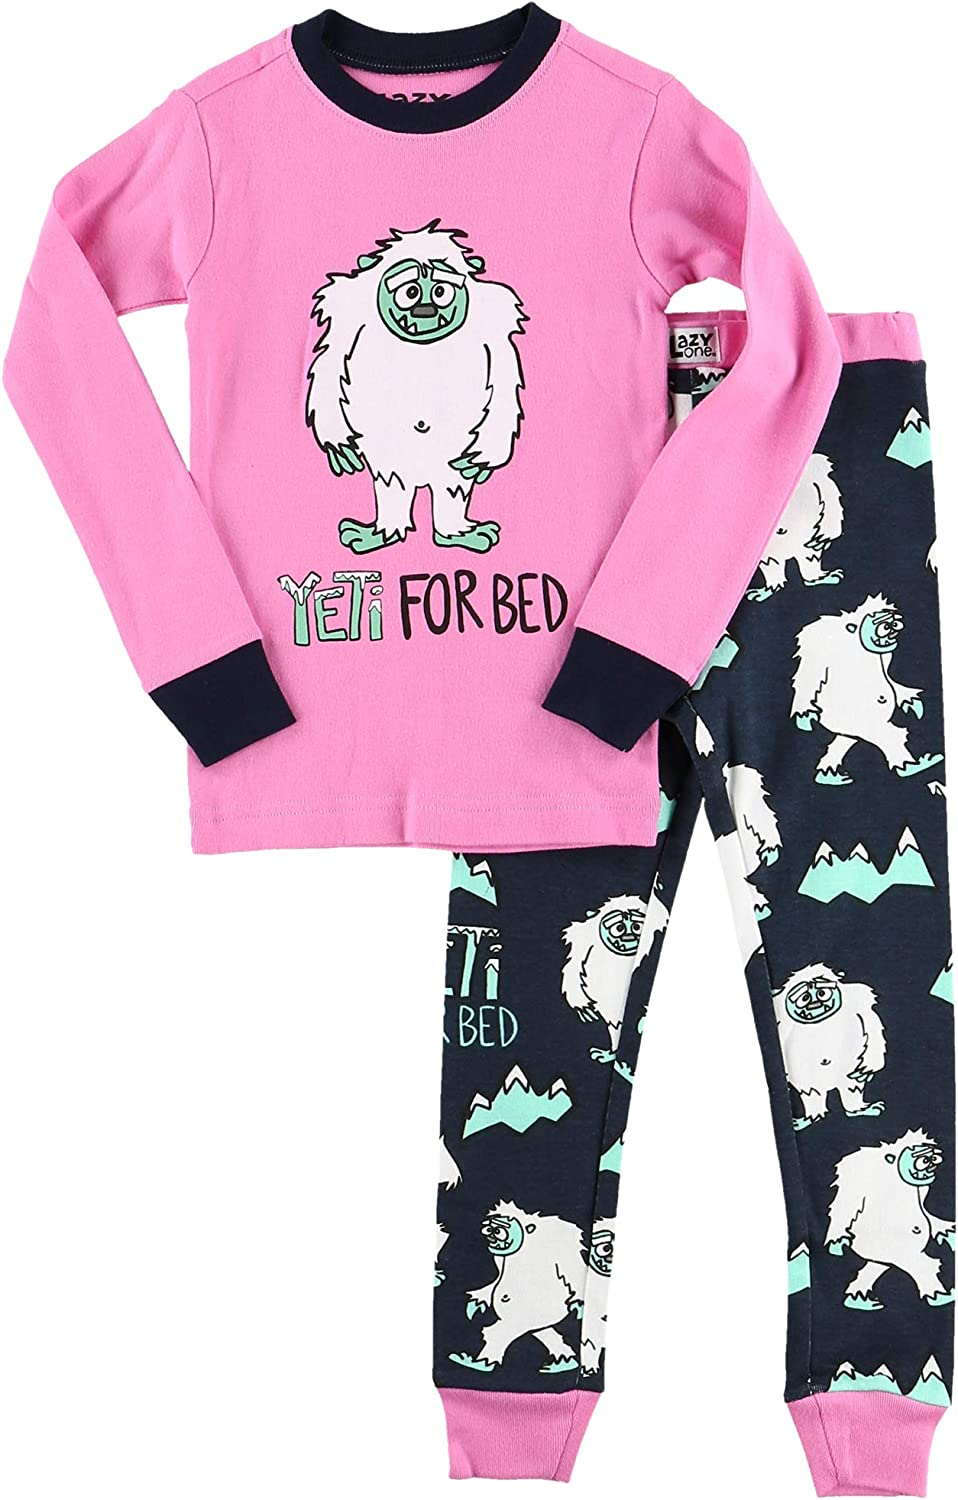 Matching Pajamas Baby /& Kids Lazy One Family Sets Teens and Adults